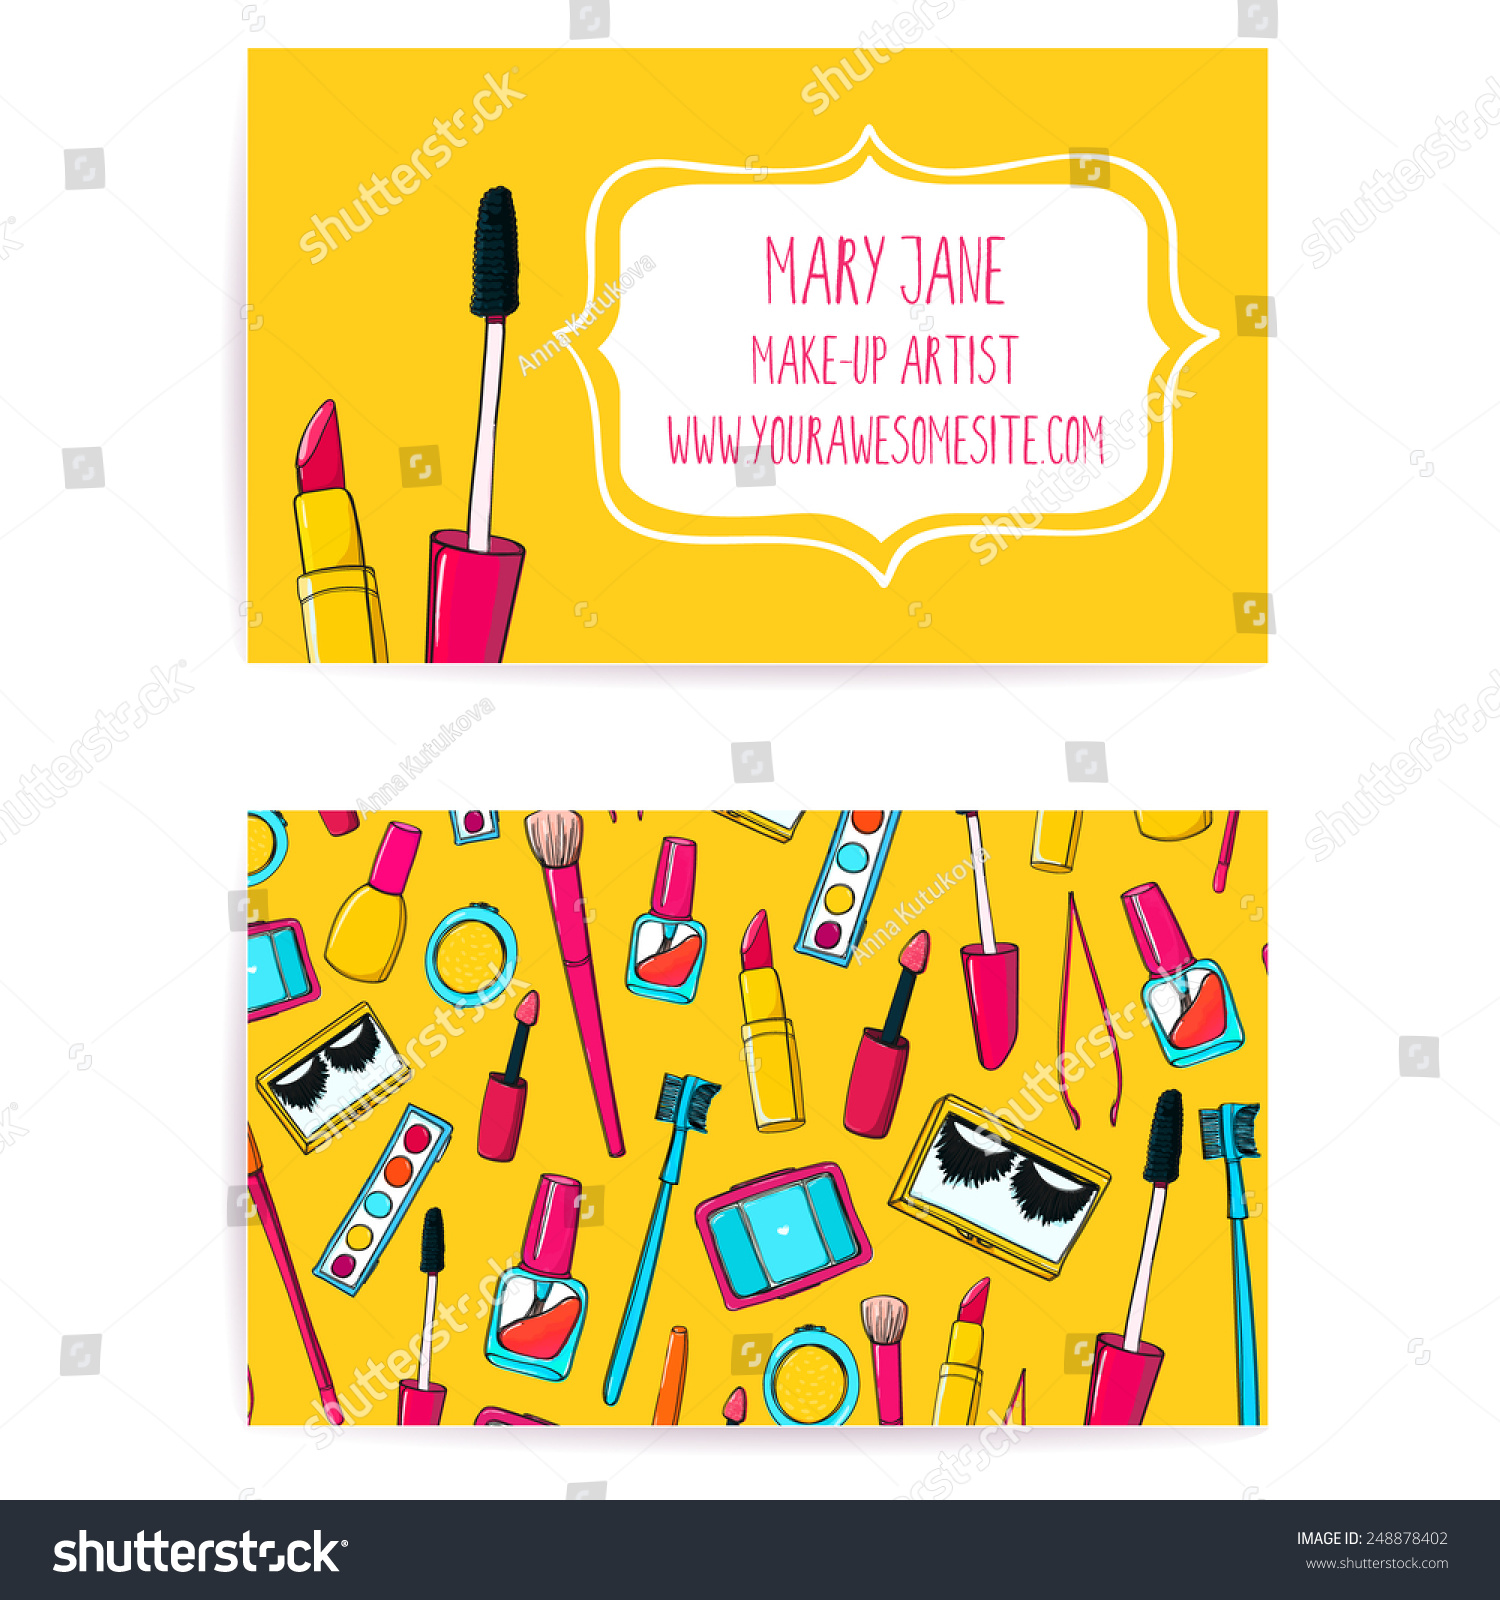 Colorful Make Artist Business Card Template Stock Photo (Photo ...